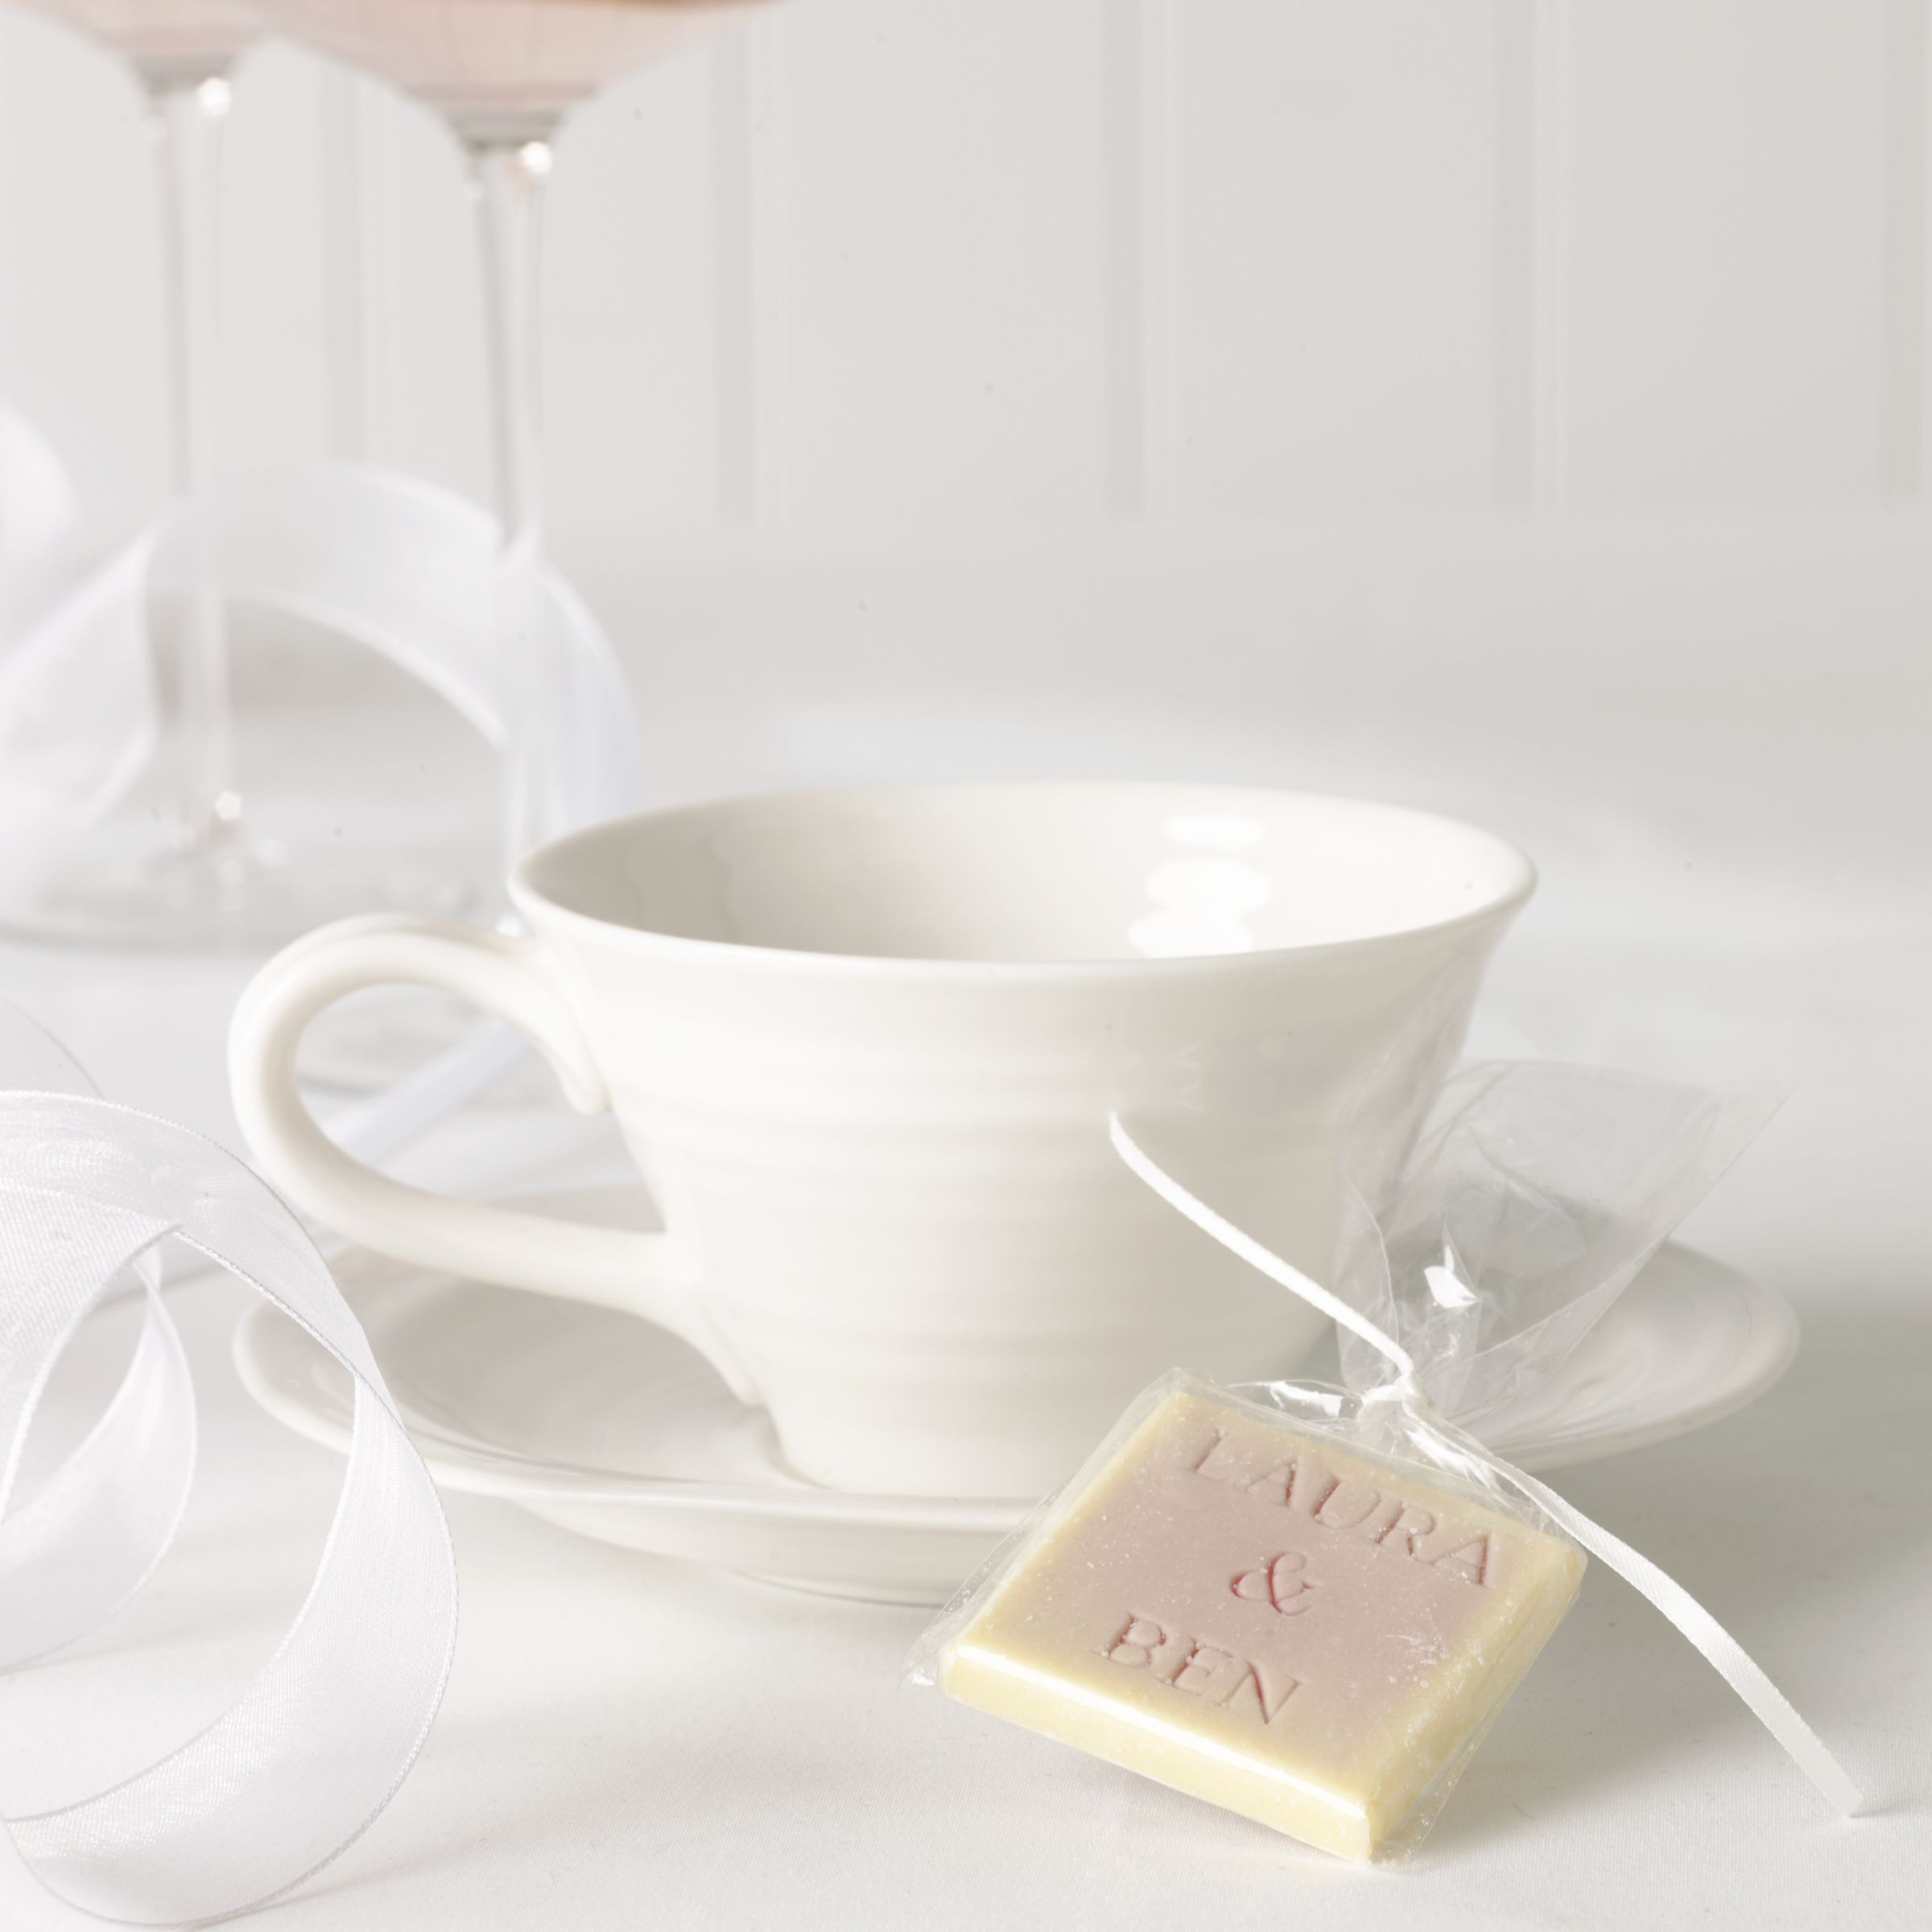 John Lewis Wedding Gift List Review : ... on Choc Personalised White Chocolate Favours, Pack of 50 John Lewis